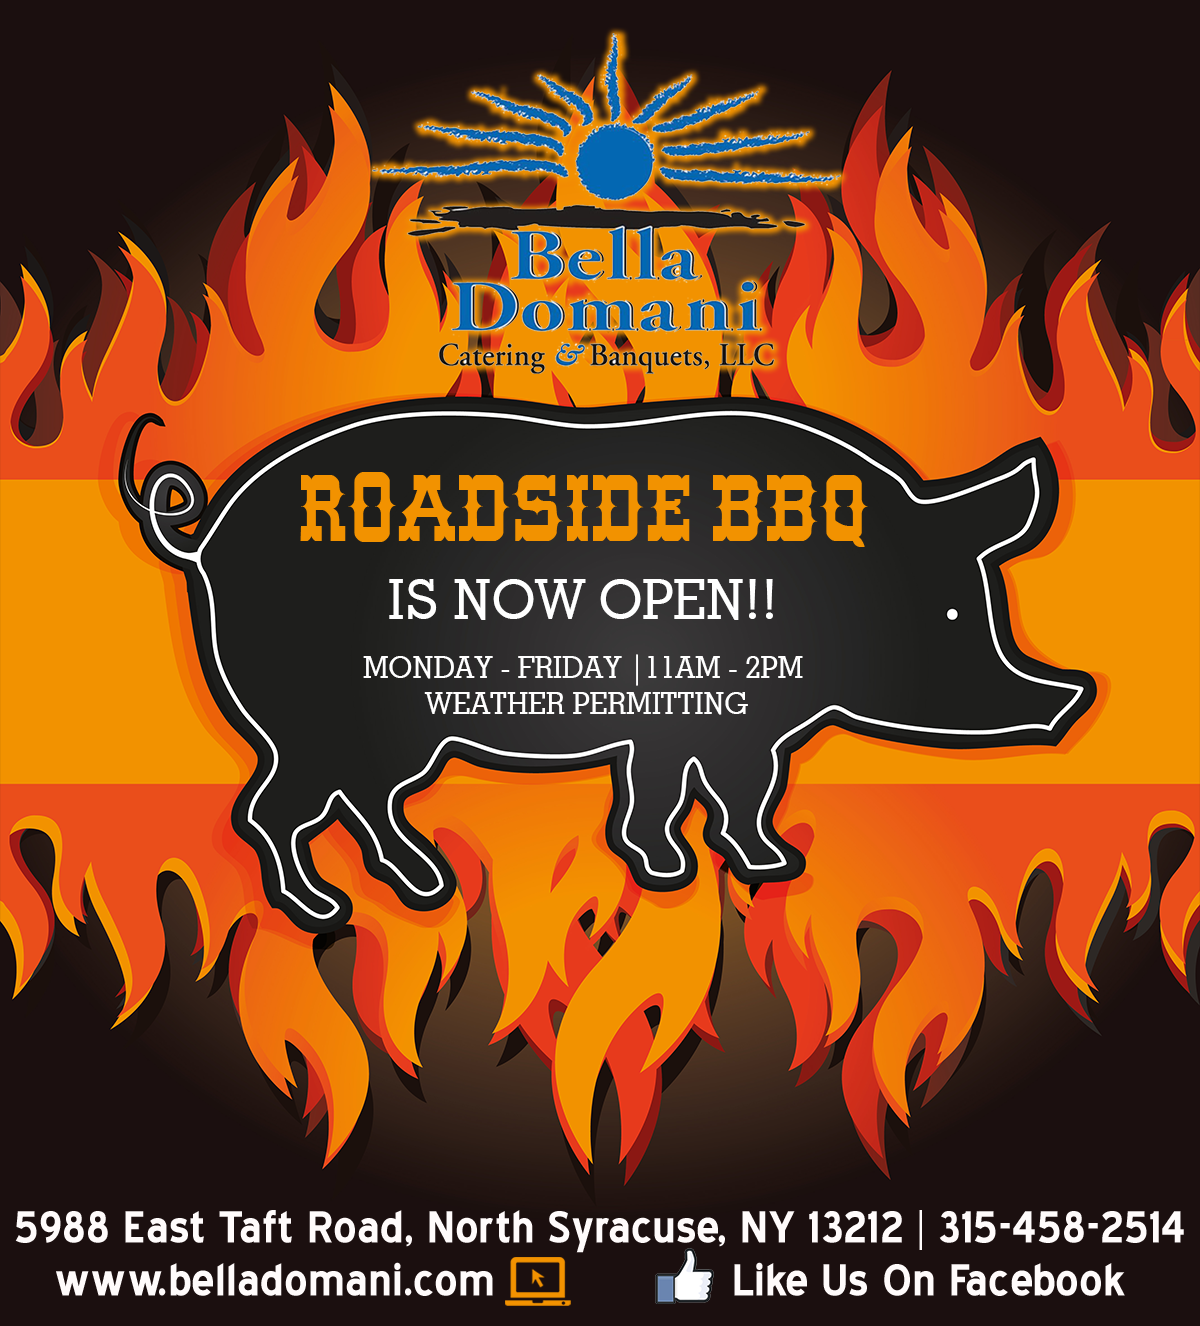 roadside bbq is now open!! monday -friday 11am-2pm weather permitting